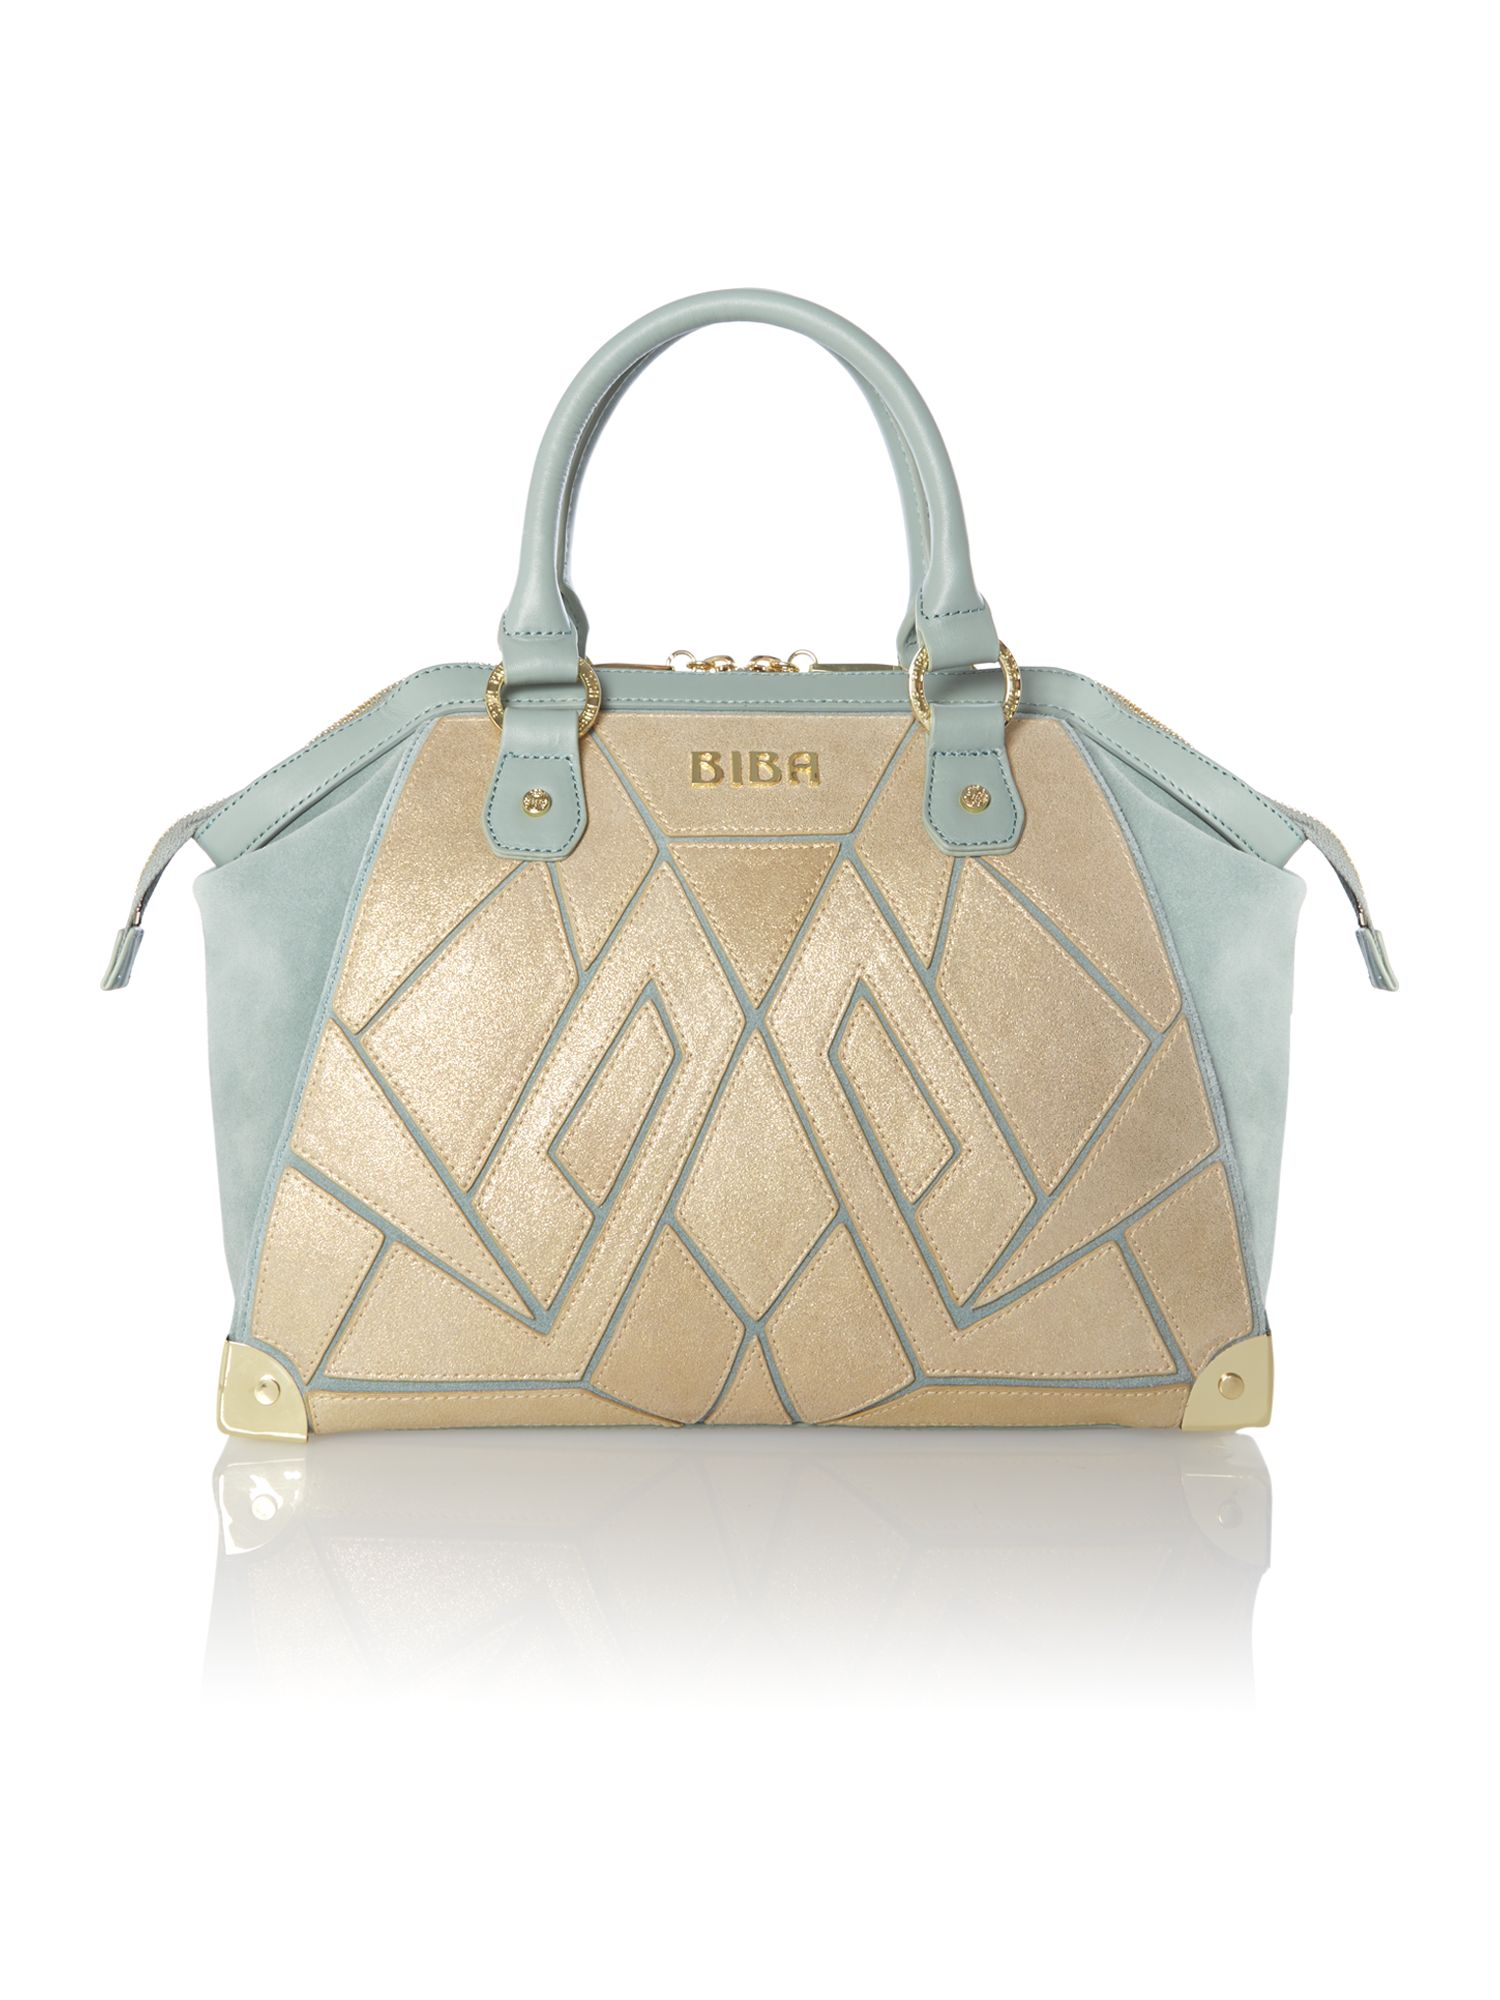 Tan Leather Bags House Of Fraser